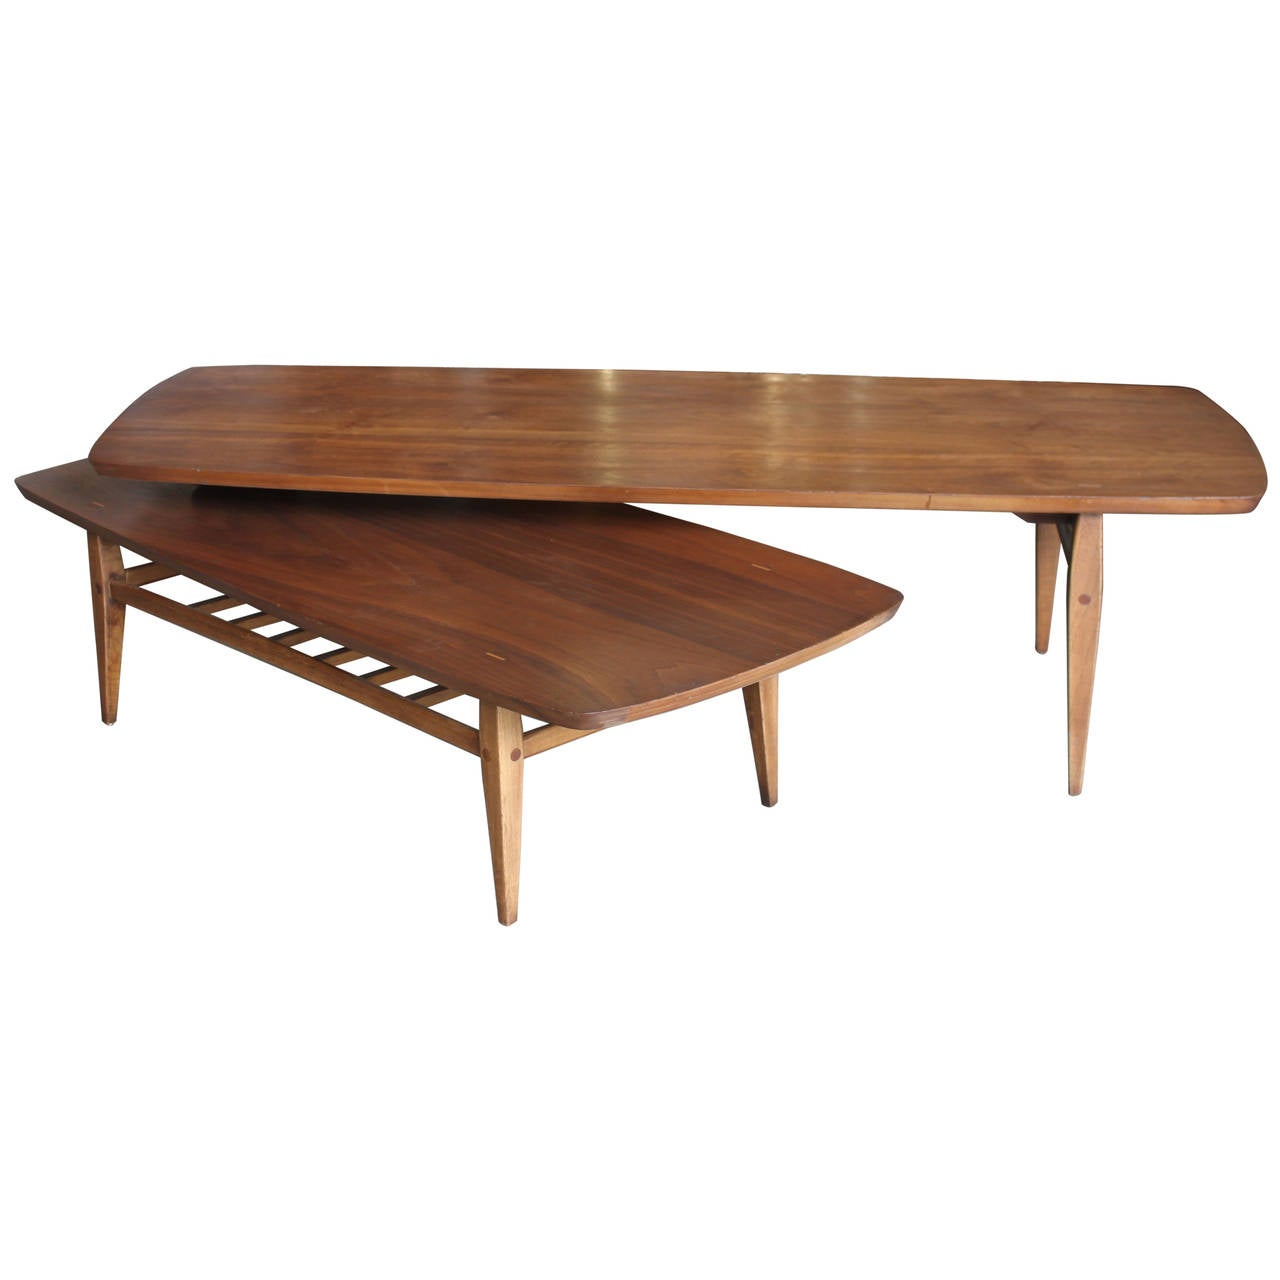 Two Tier Swivel Joint Coffee Table By Lane At 1stdibs